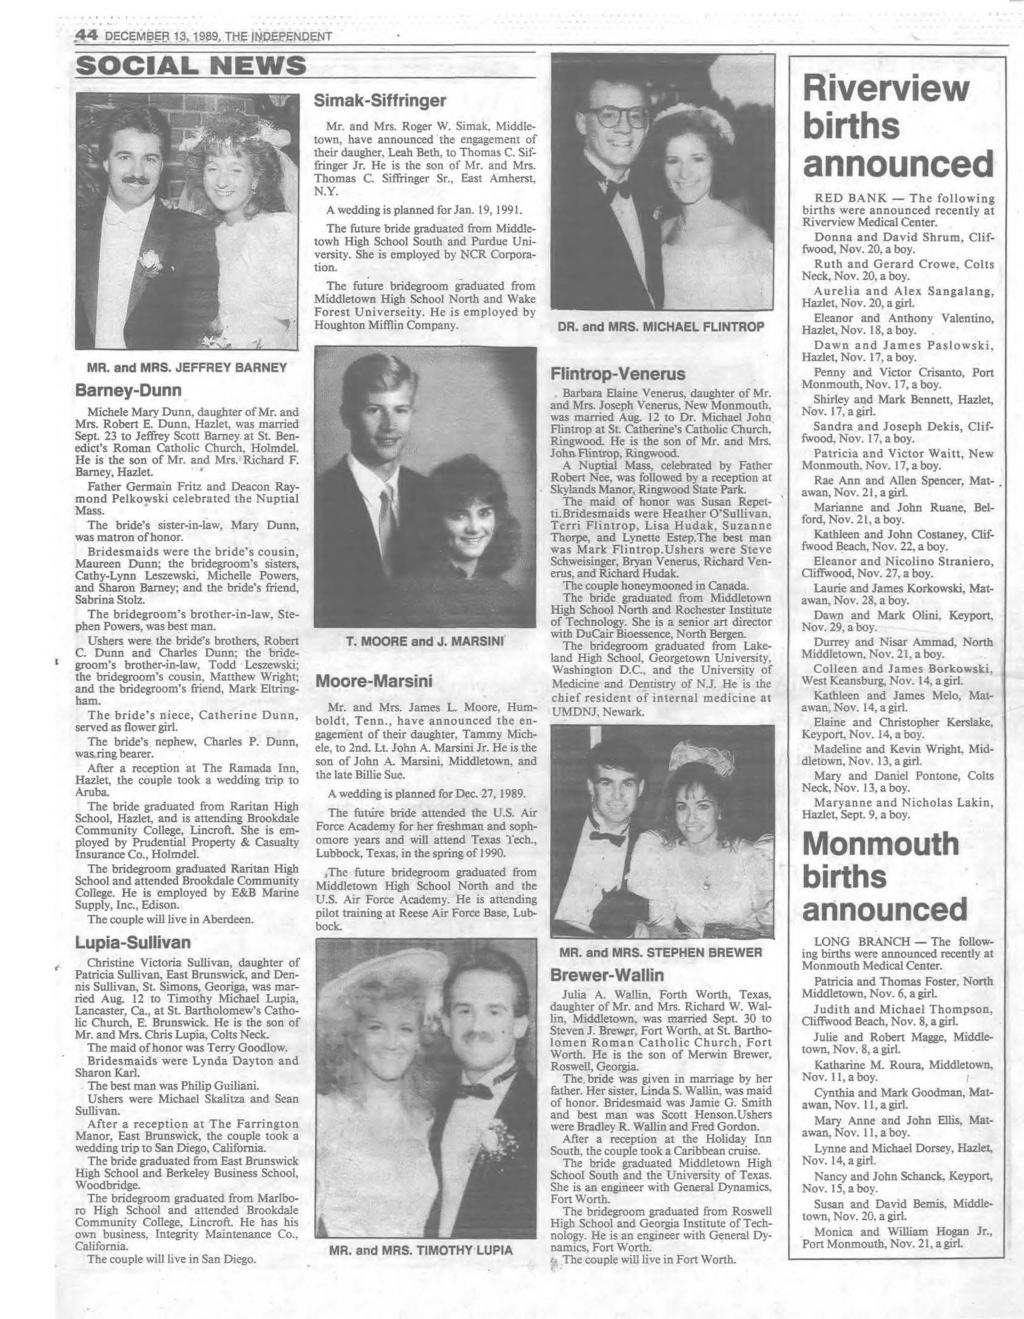 4 4 DECEM BER 13,1989, THE INDEPENDENT S O C IA L N E W S MR. and MRS. JEFFREY BARNEY Barney-Dunn Michele Mary Dunn, daughter of Mr. and Mrs. Robert E. Dunn, Hazlet, was married Sept.